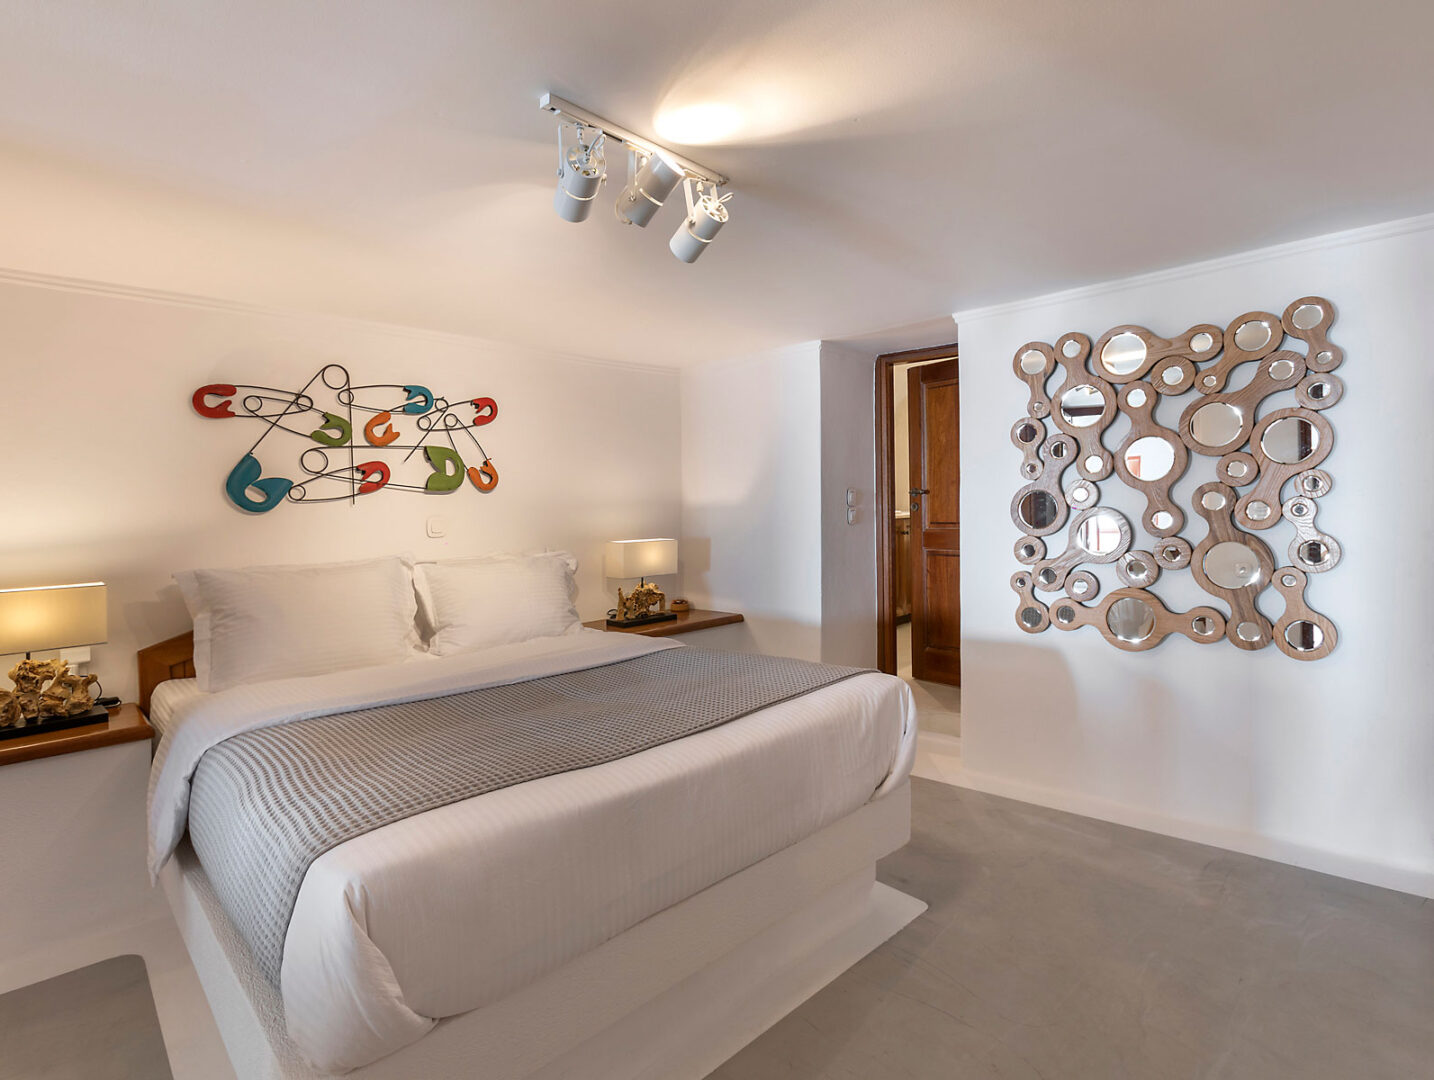 Santorini Caldera bedroom